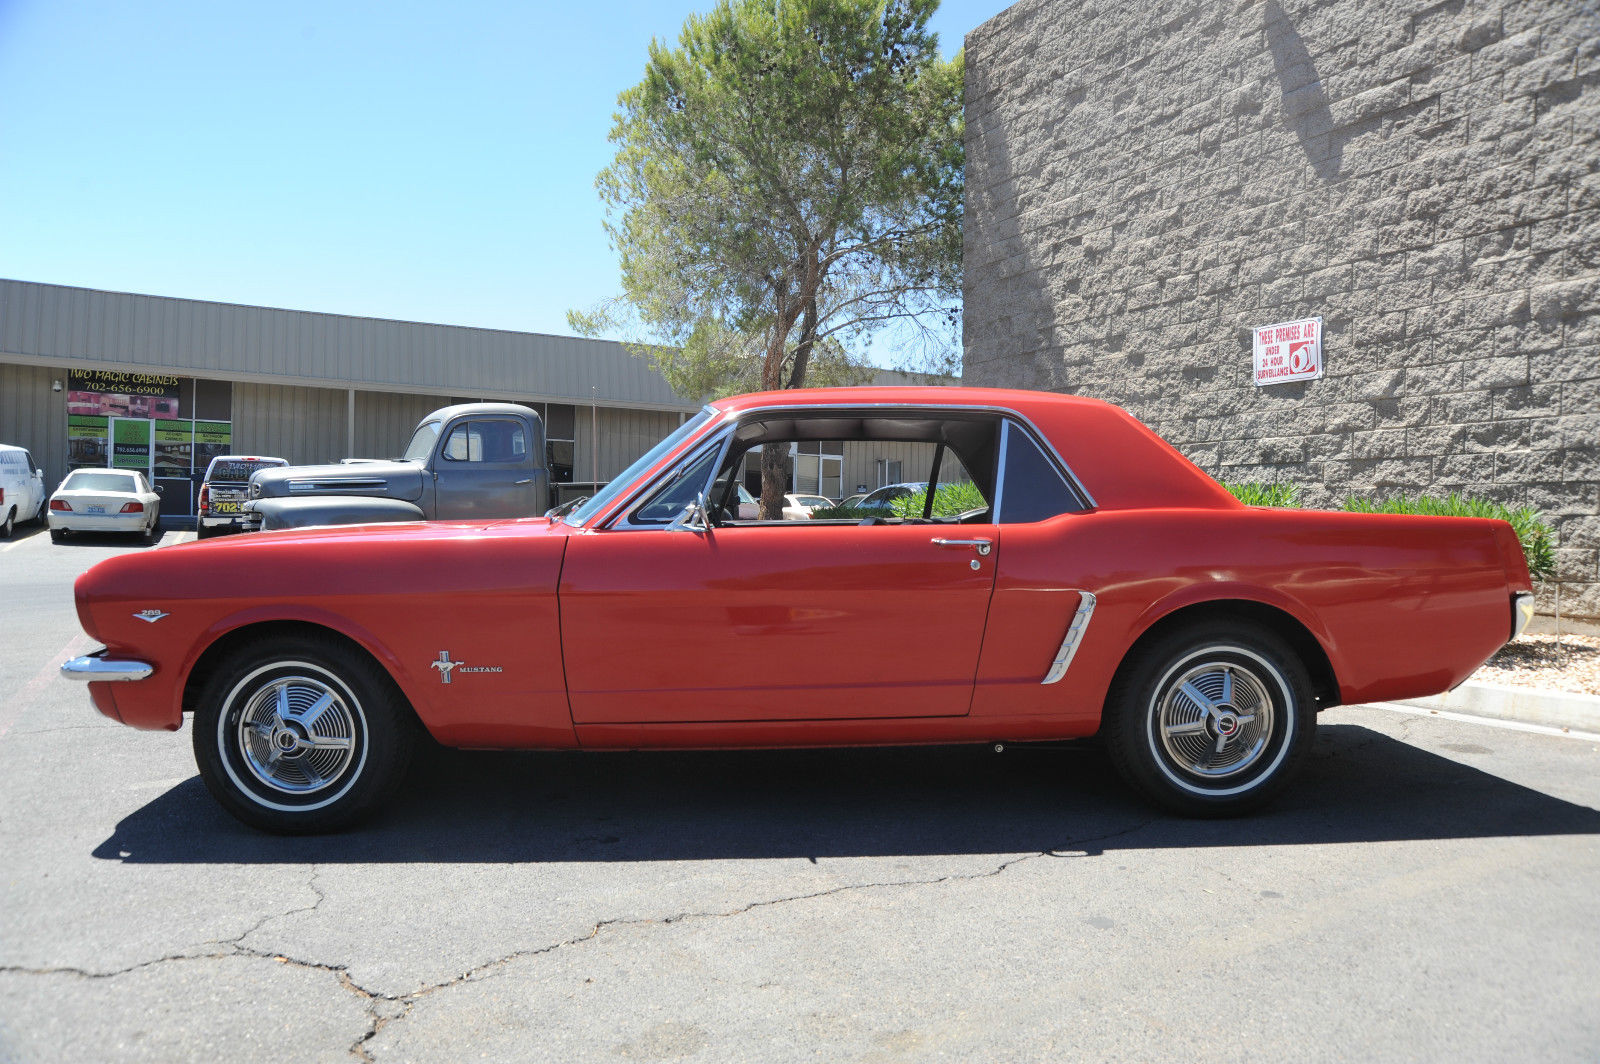 1964 1 2 1965 ford mustang coupe hurst 4 speed matching s new tires nice. Black Bedroom Furniture Sets. Home Design Ideas